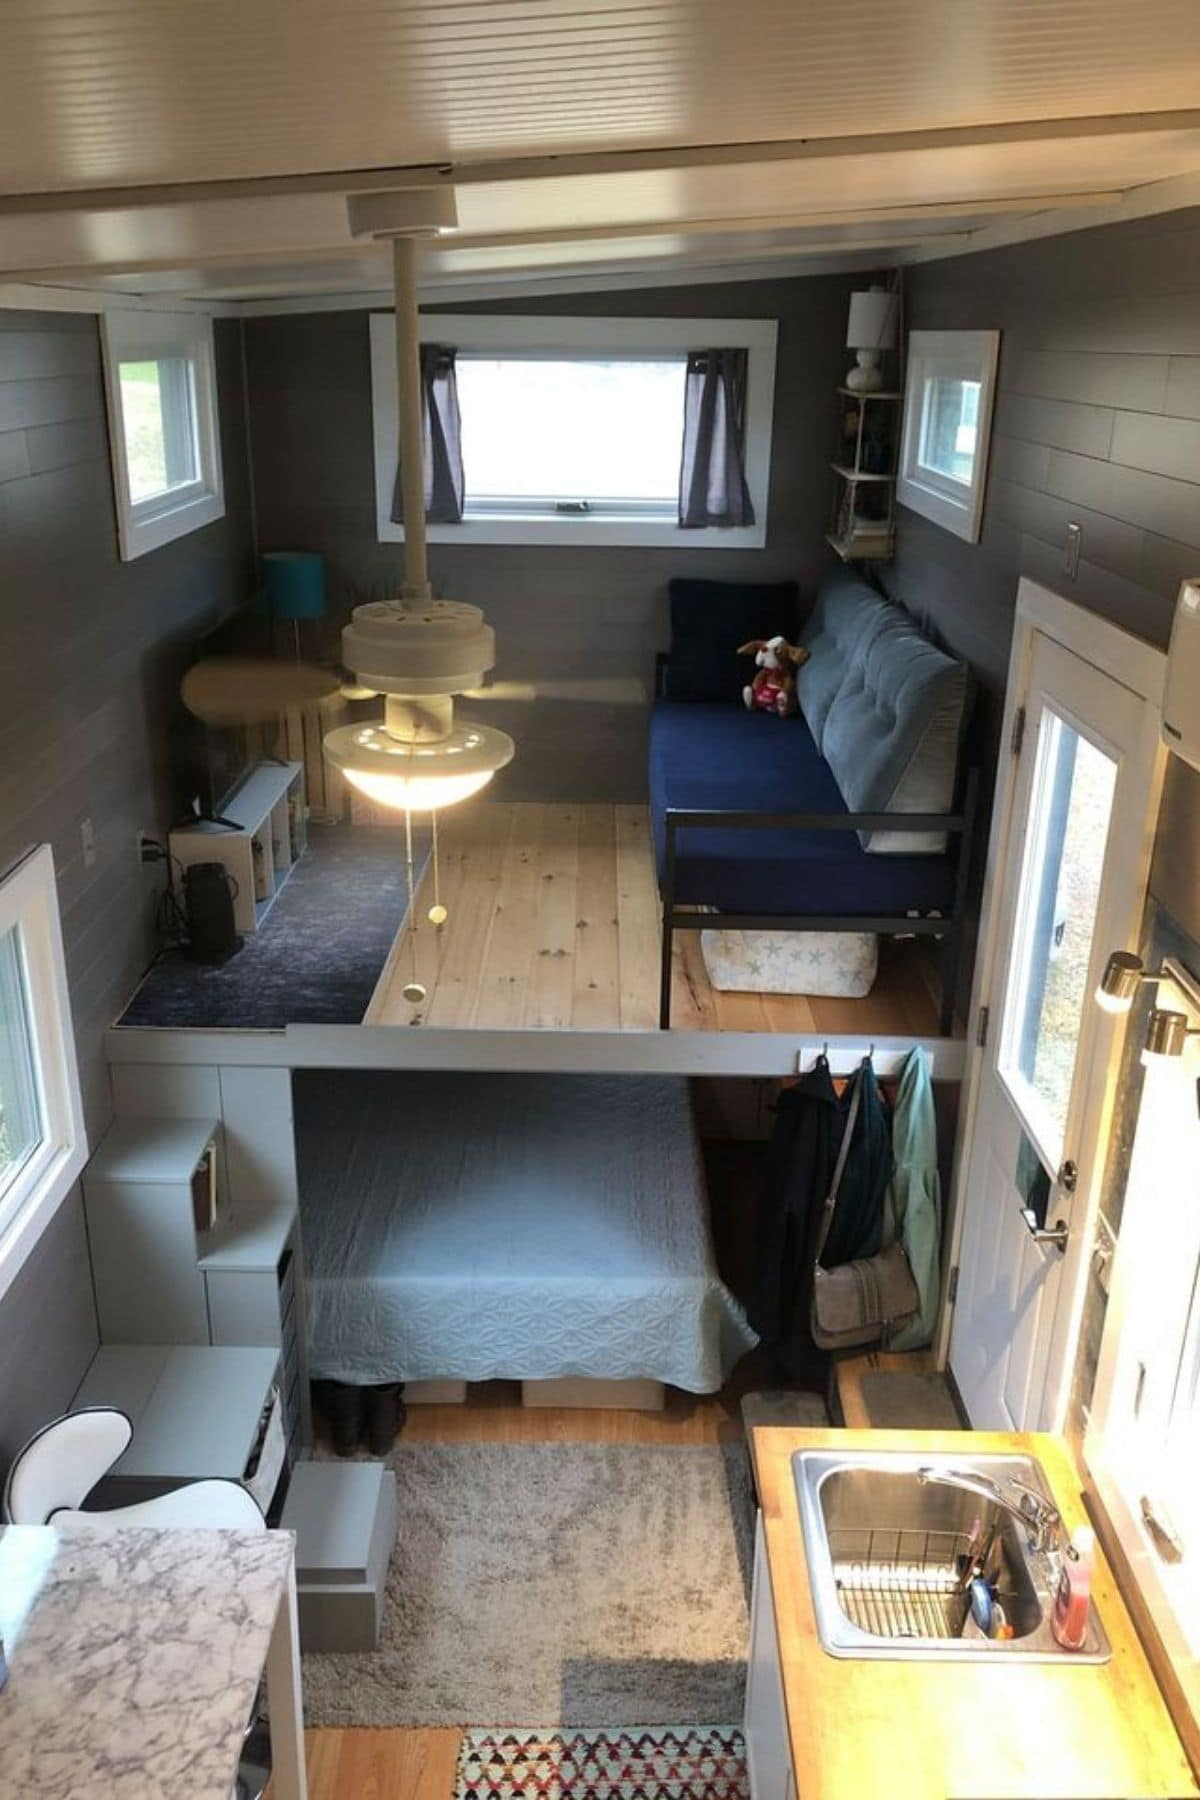 View of loft with sofa and bed underneath in cubby